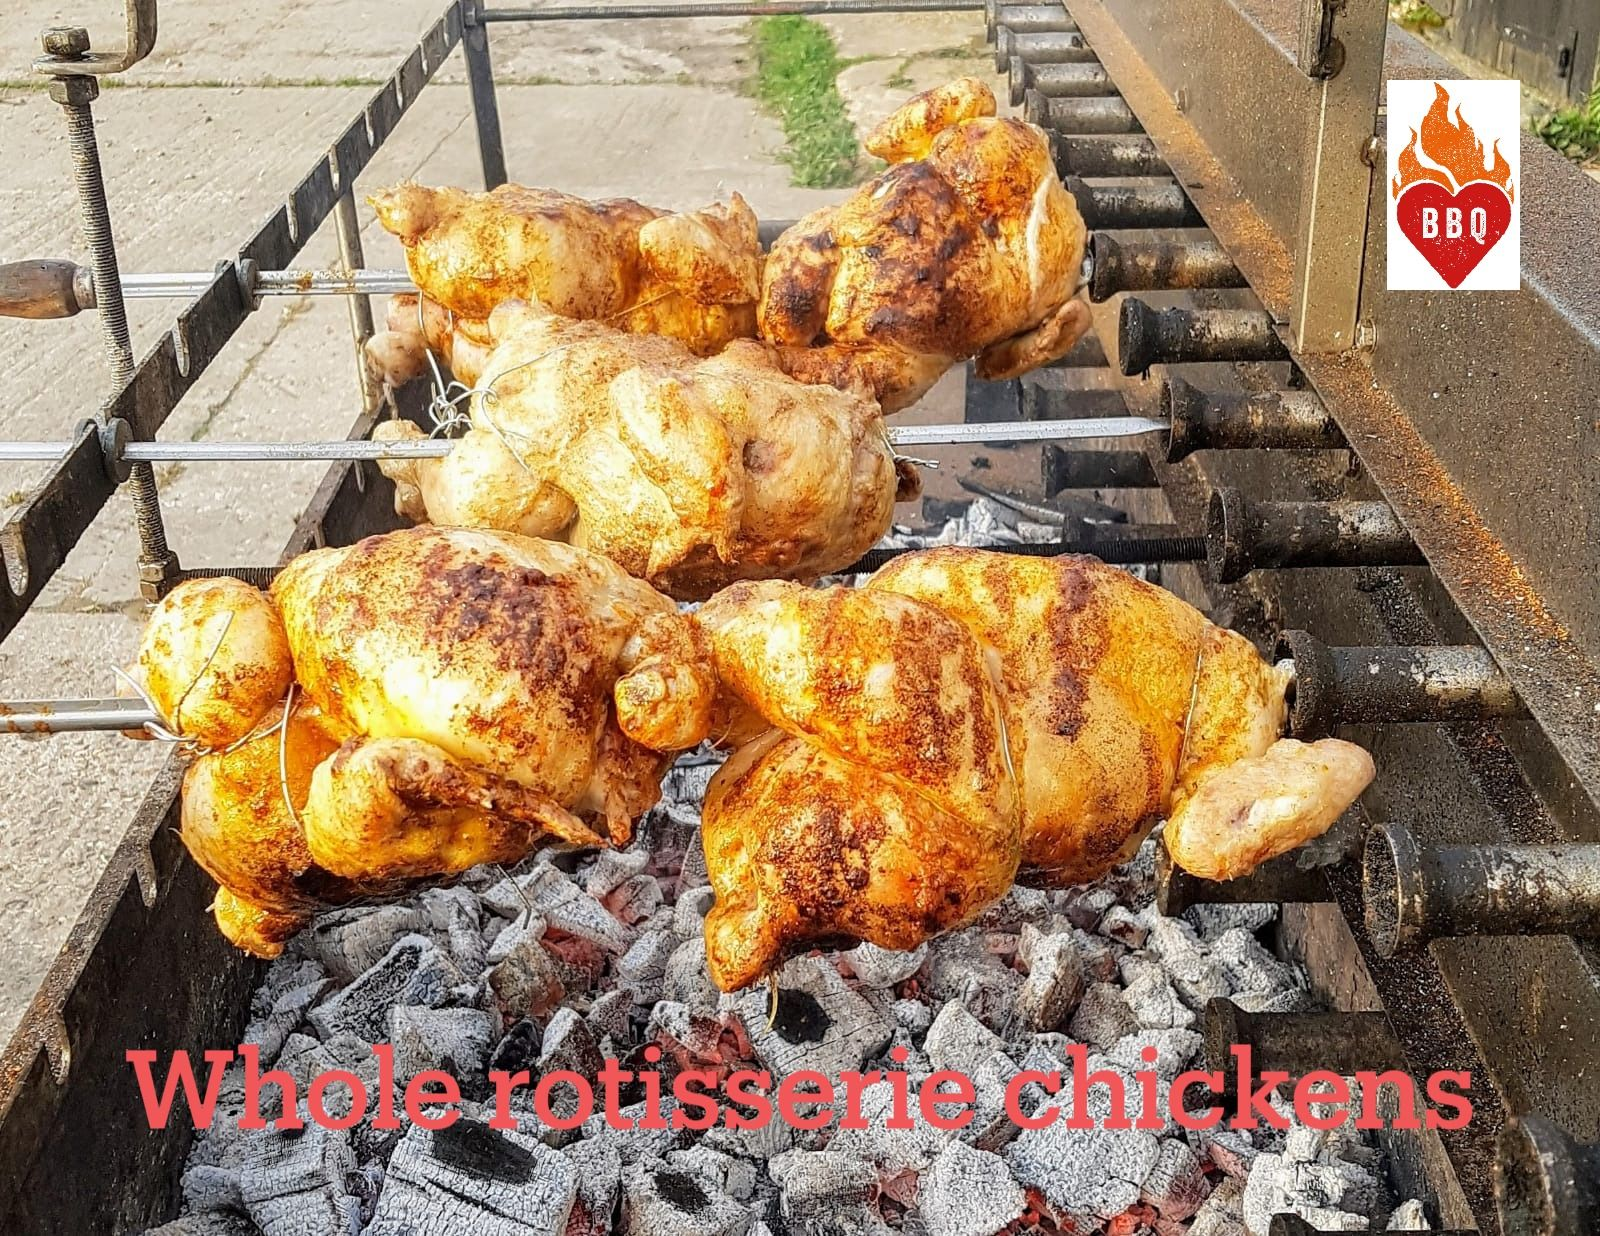 At fabulous bbq we love trying to create new ideas for